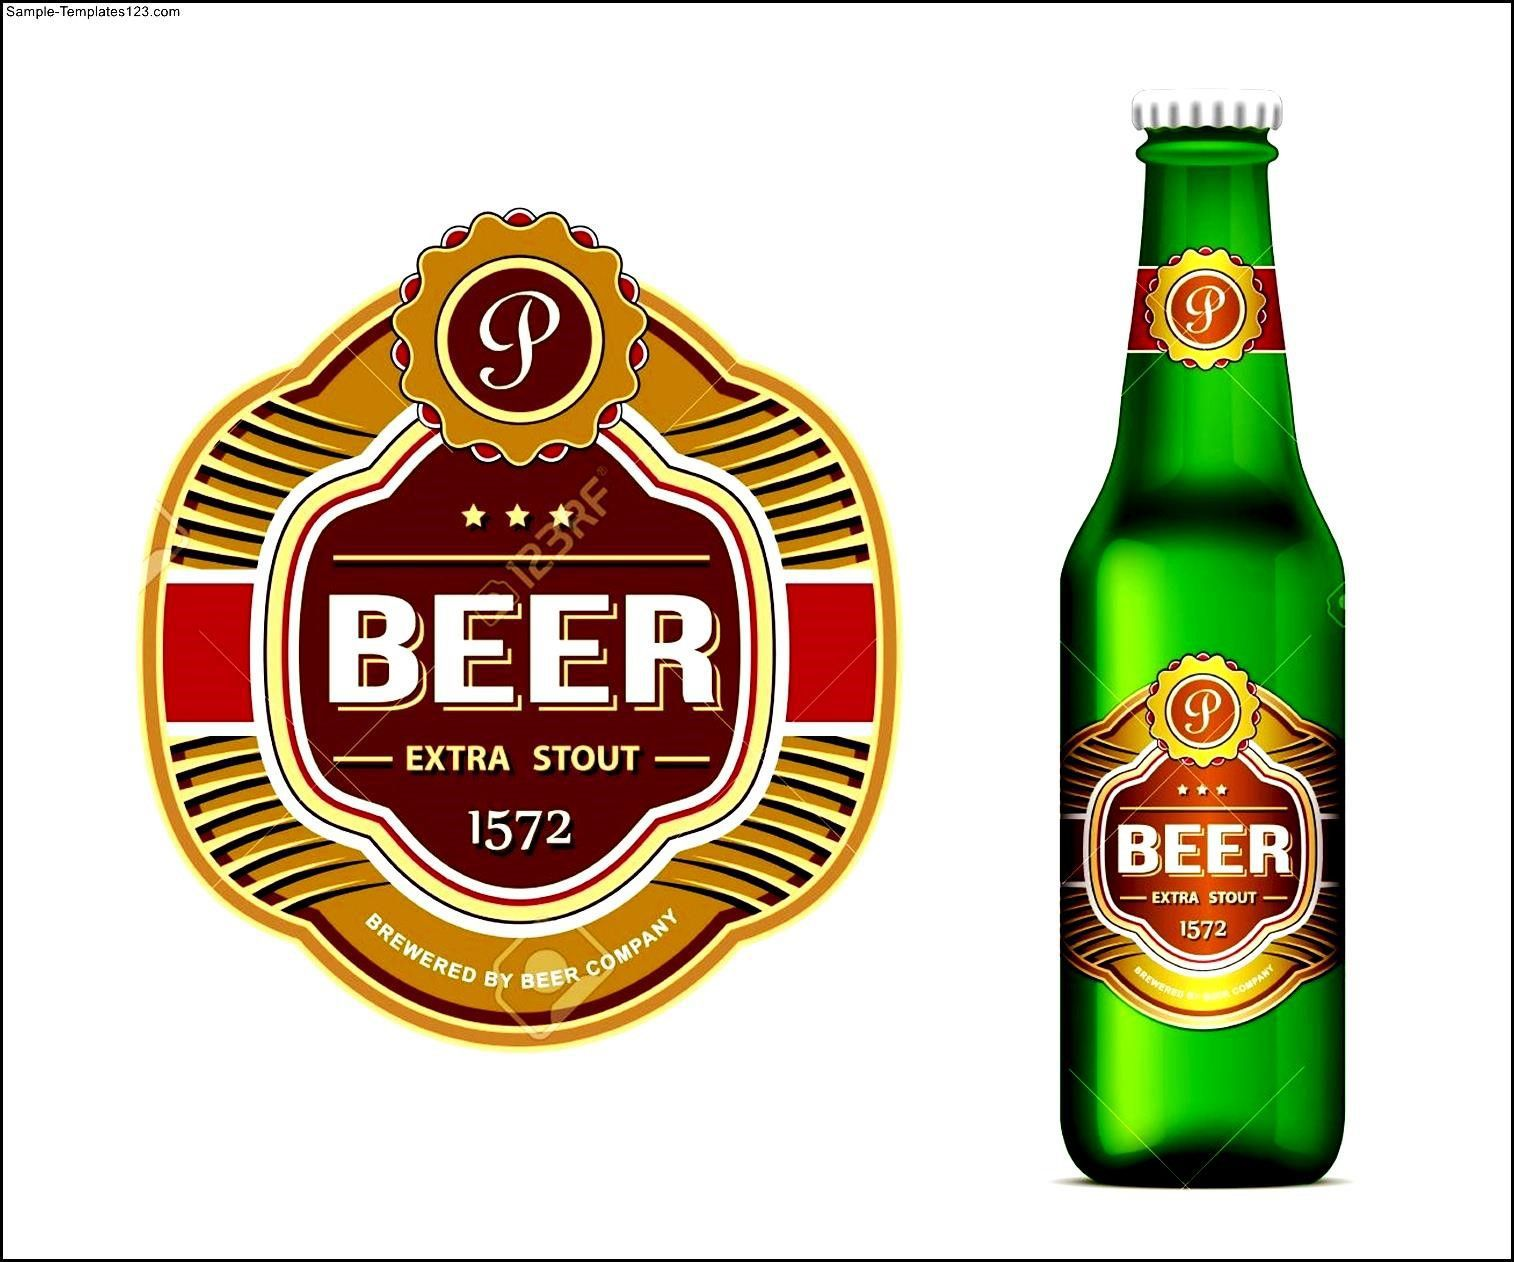 011 Unforgettable Beer Label Template Word Picture  Free Bottle MicrosoftFull